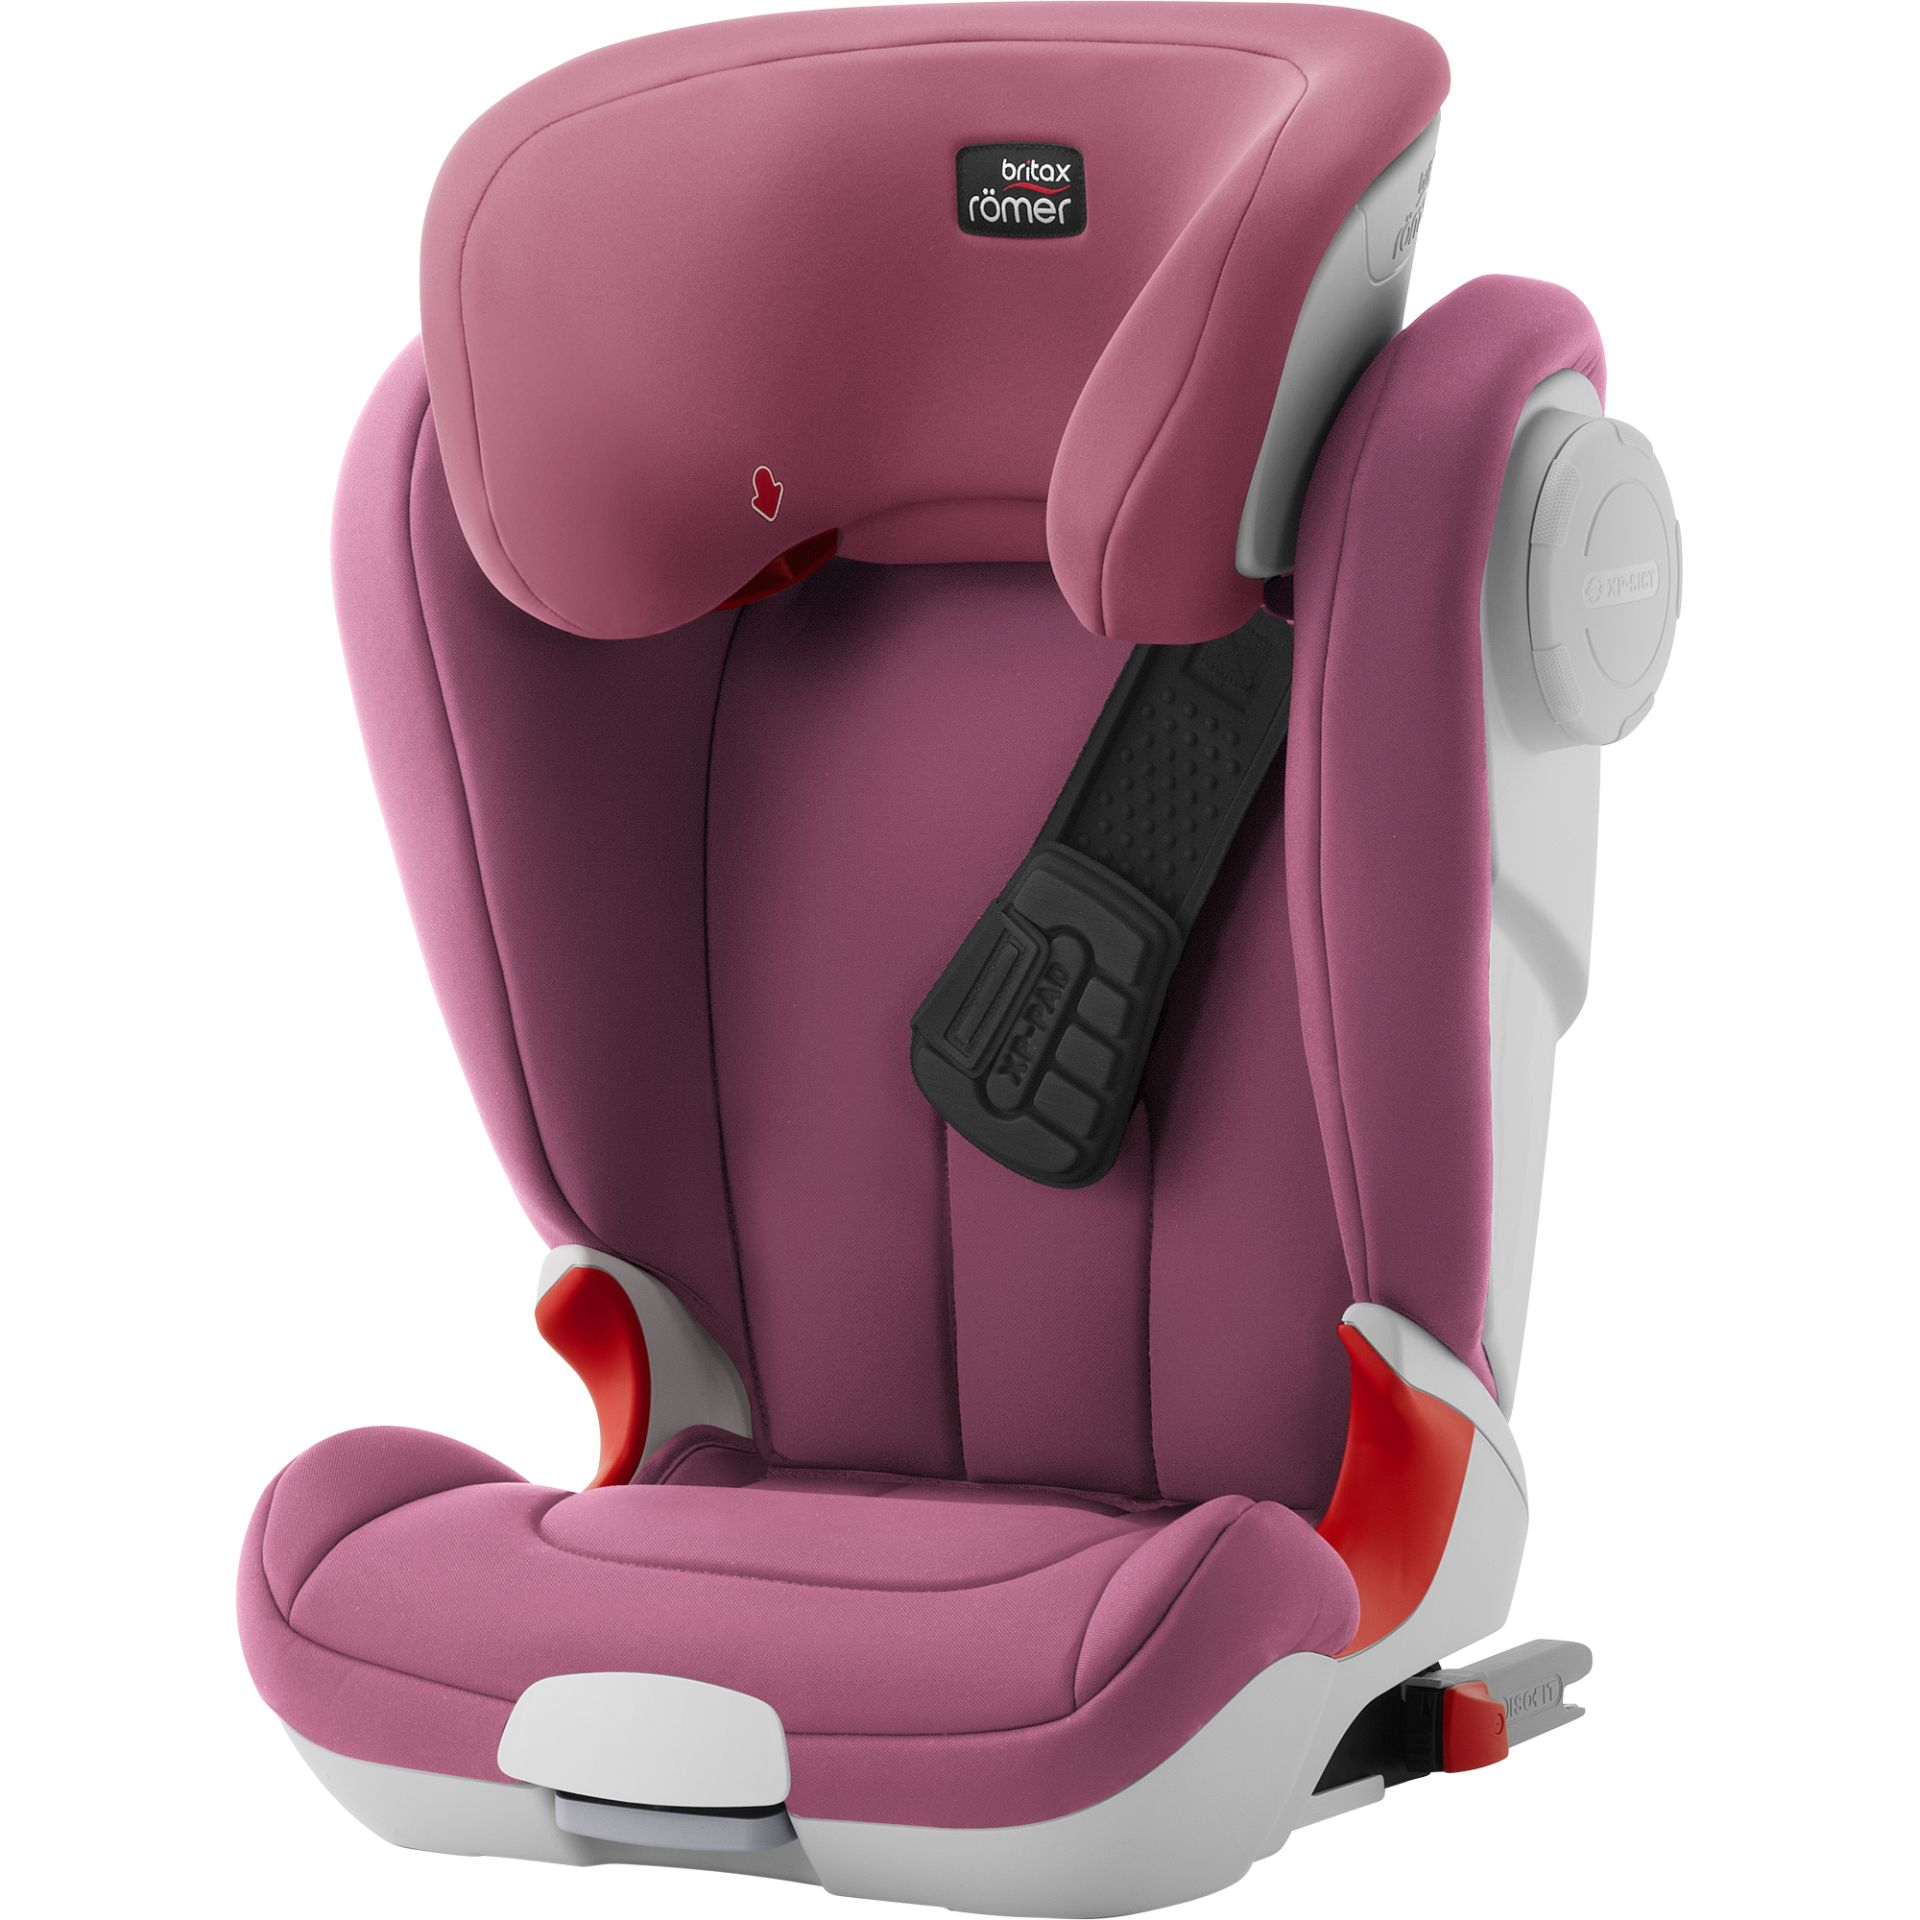 britax r mer child car seat kidfix xp sict 2019 wine rose buy at kidsroom car seats. Black Bedroom Furniture Sets. Home Design Ideas